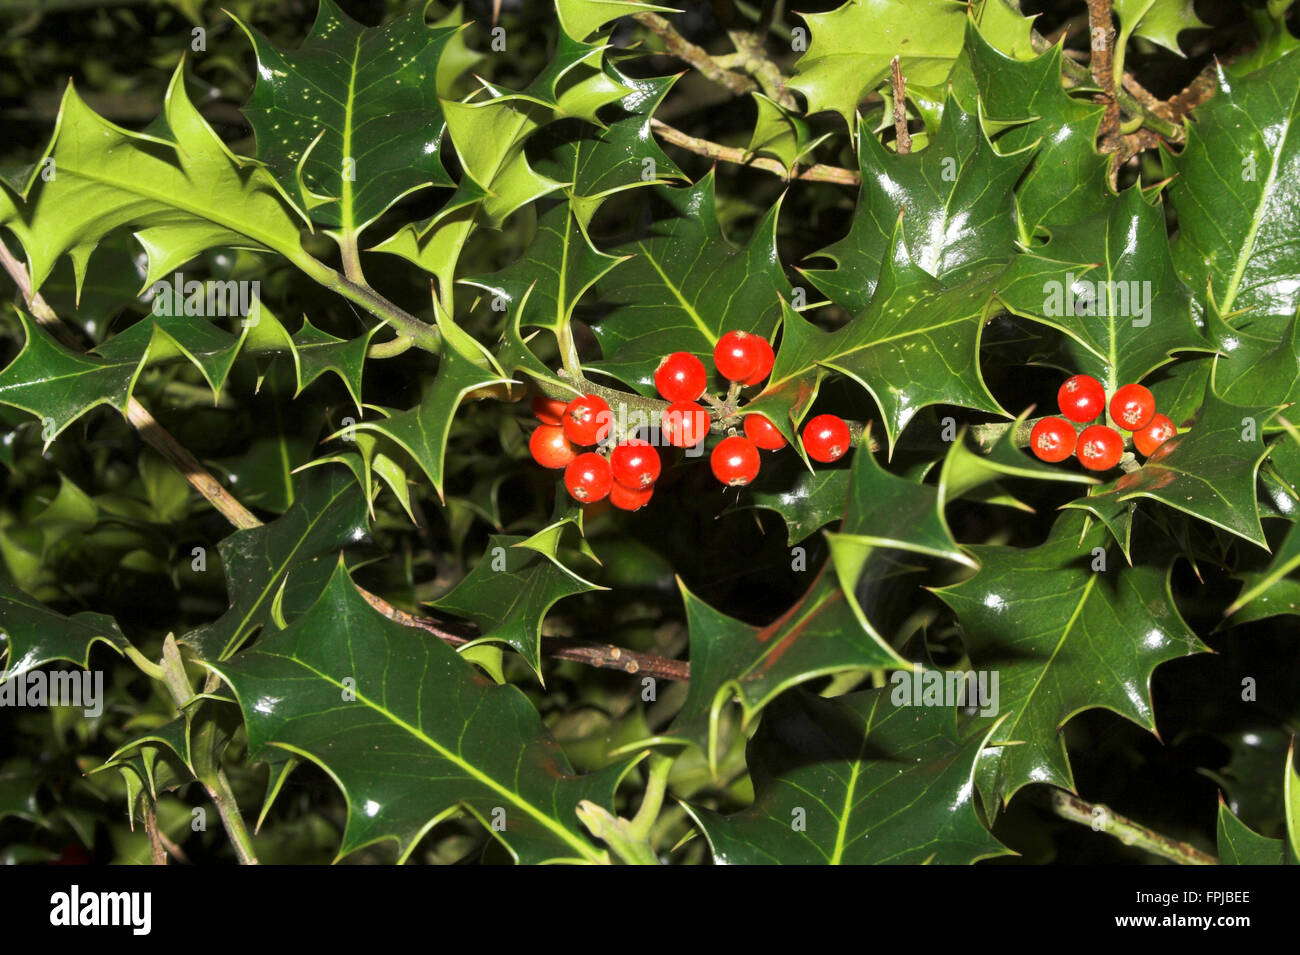 Holly Leaves Green Spiky With Red Berries In Landscape Format